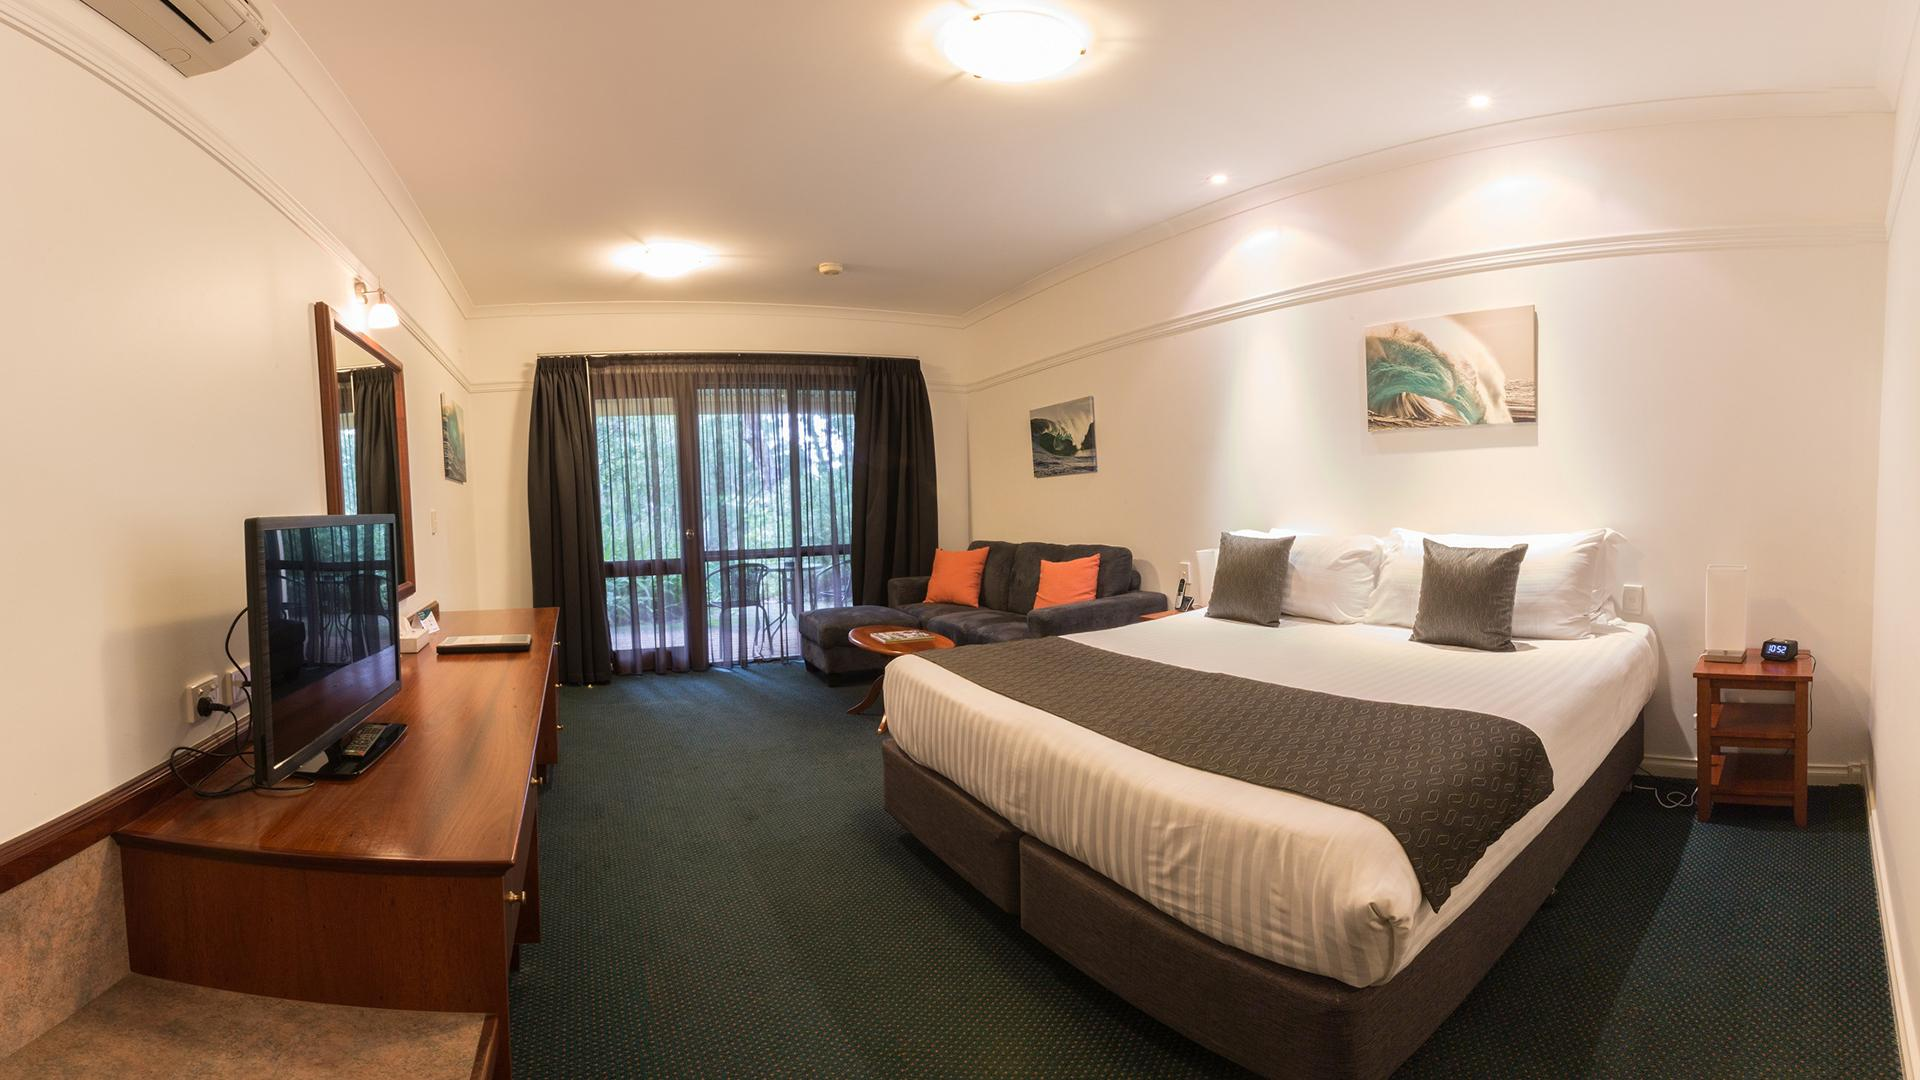 King Room image 1 at Stay Margaret River by Shire of Augusta-Margaret River, Western Australia, Australia